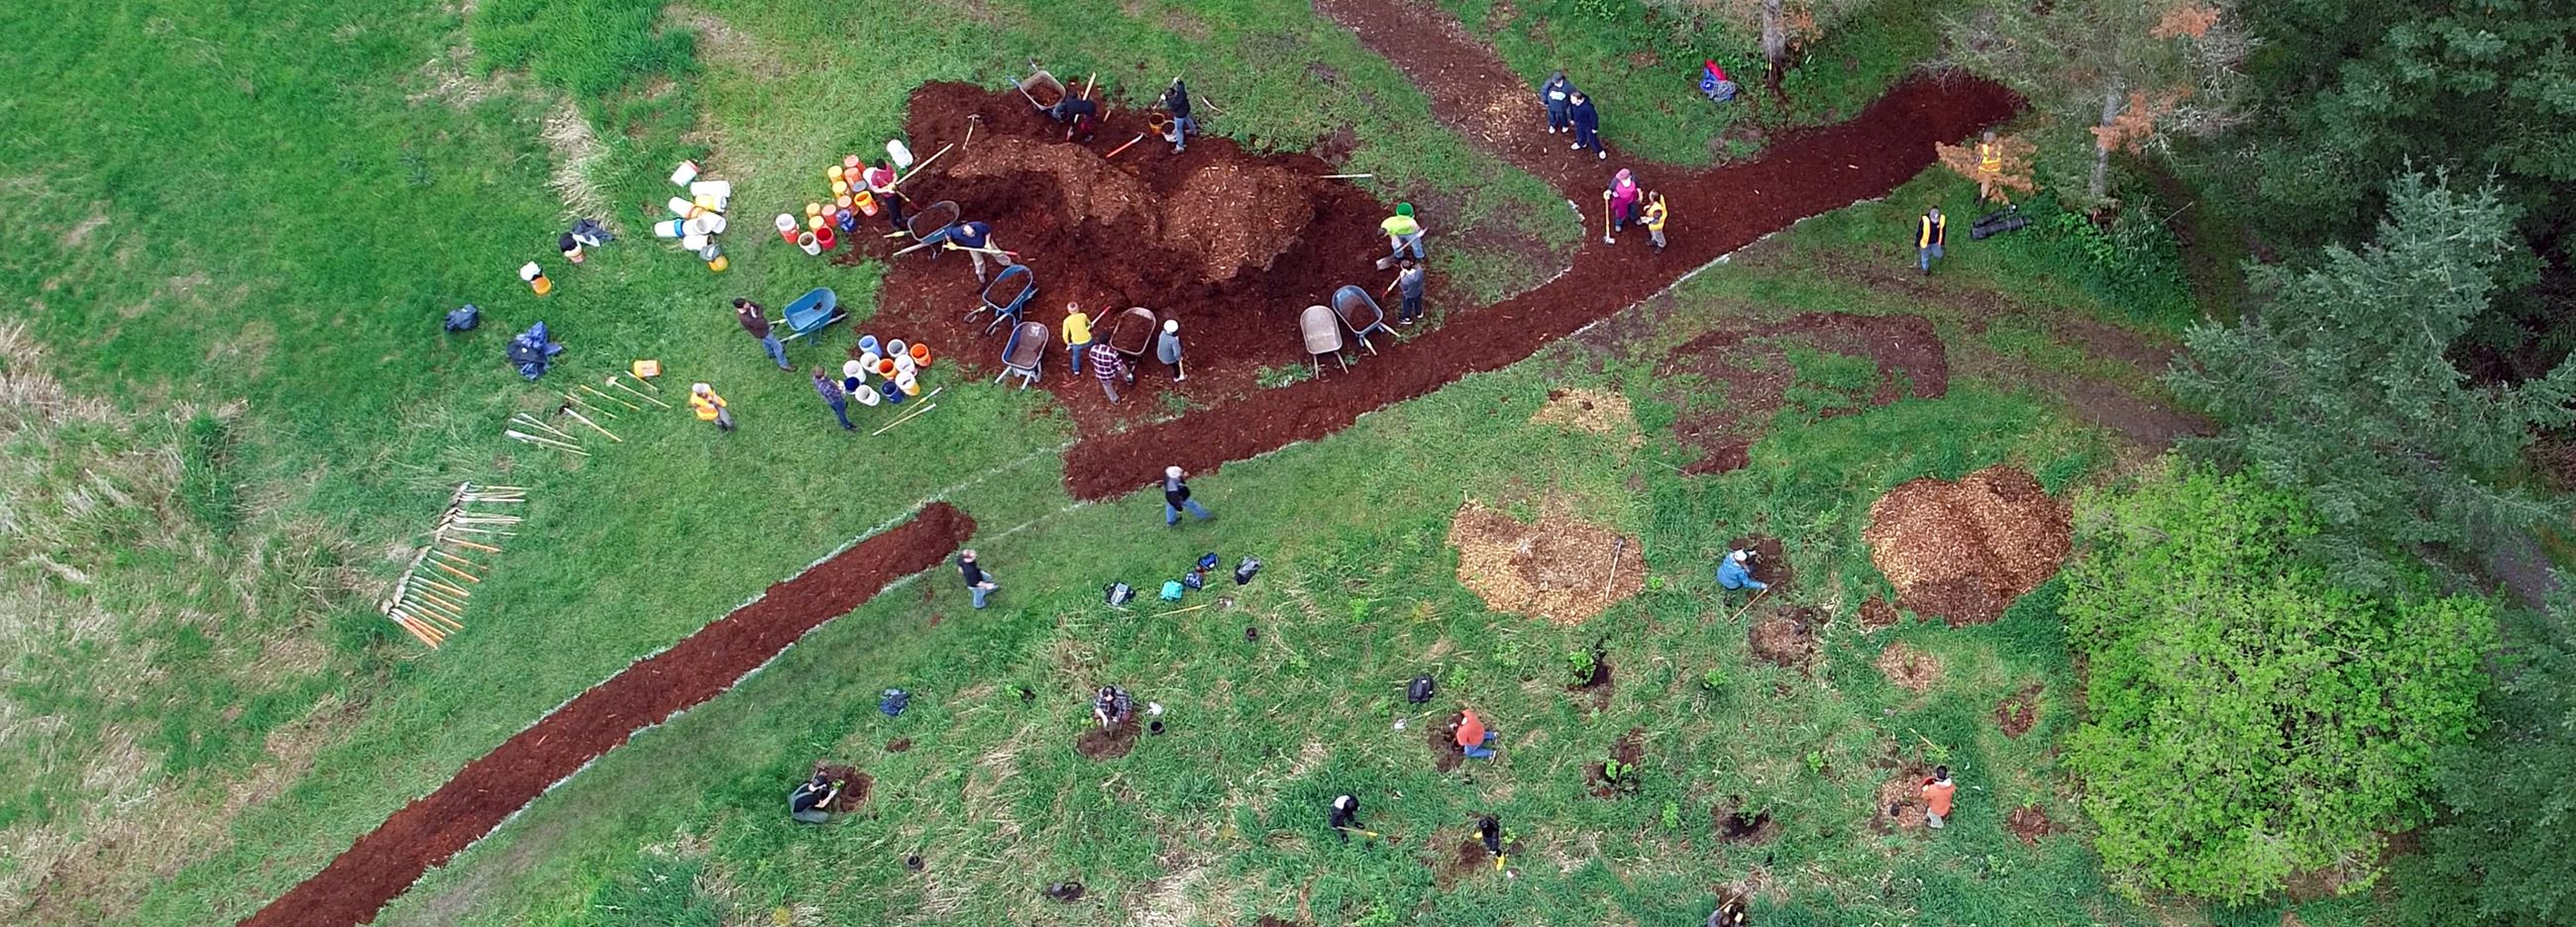 Arbor Day_ Drone_Tree Planting